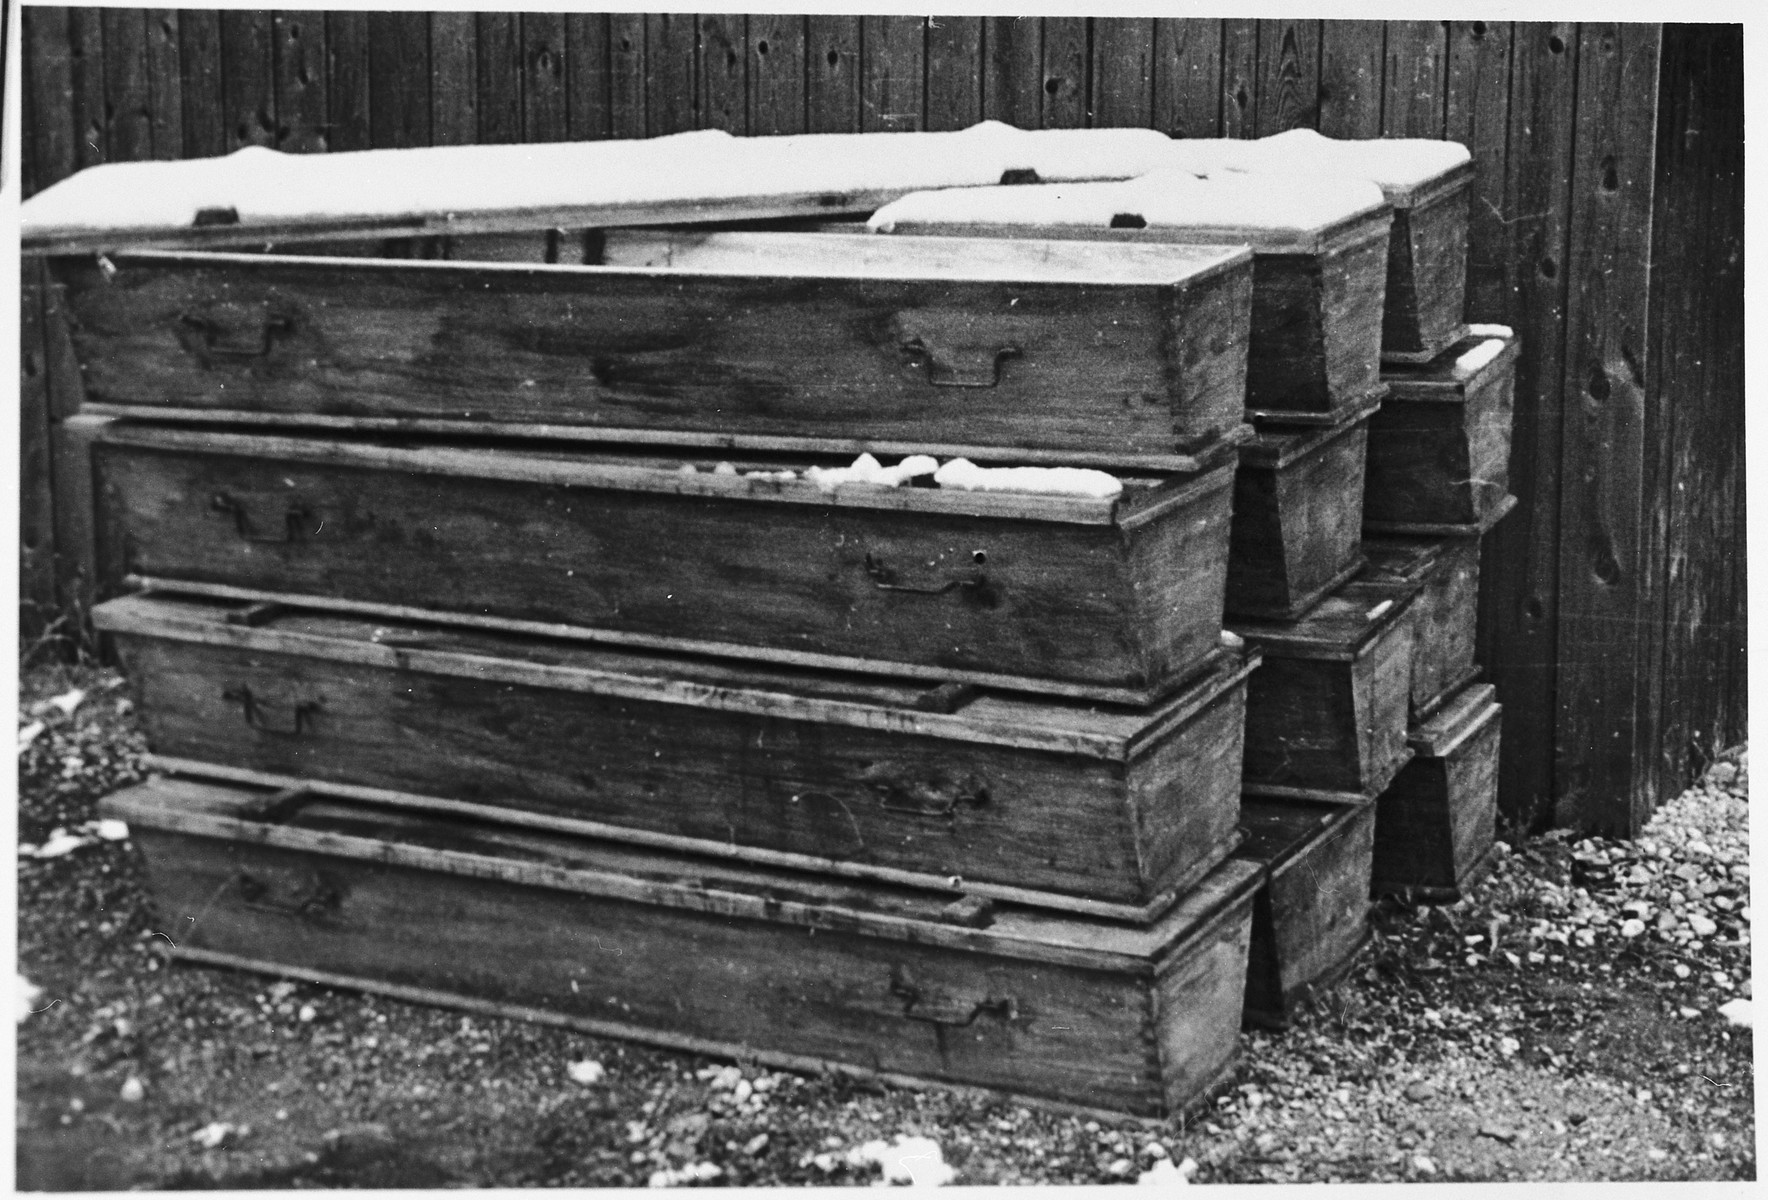 Postwar view of a pile of coffins in the Dachau concentration camp.